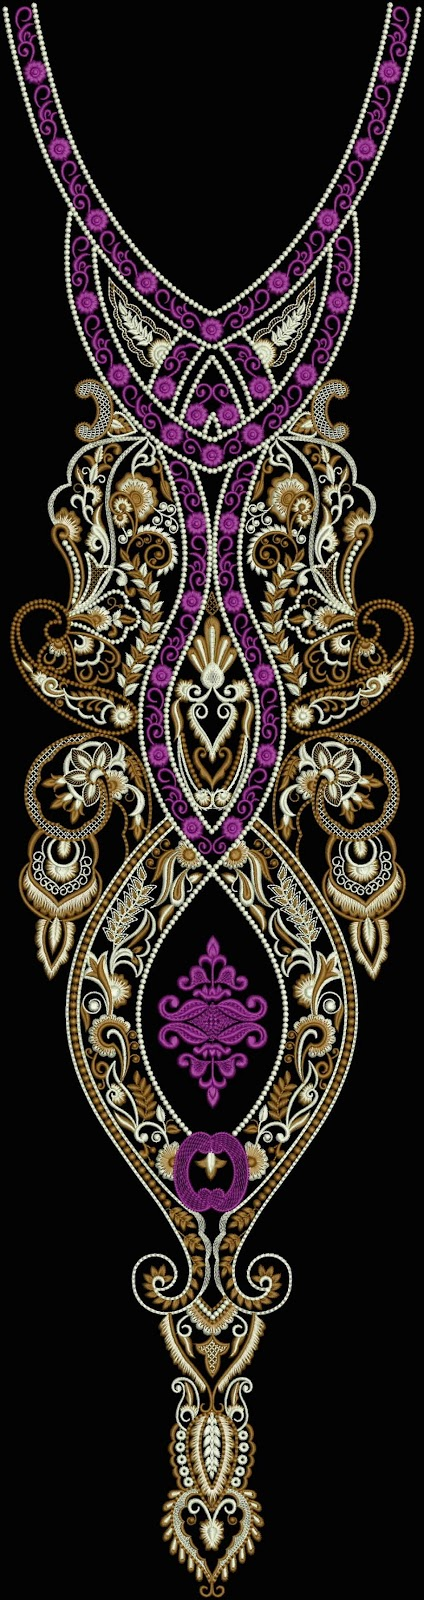 Embroidery Designs image